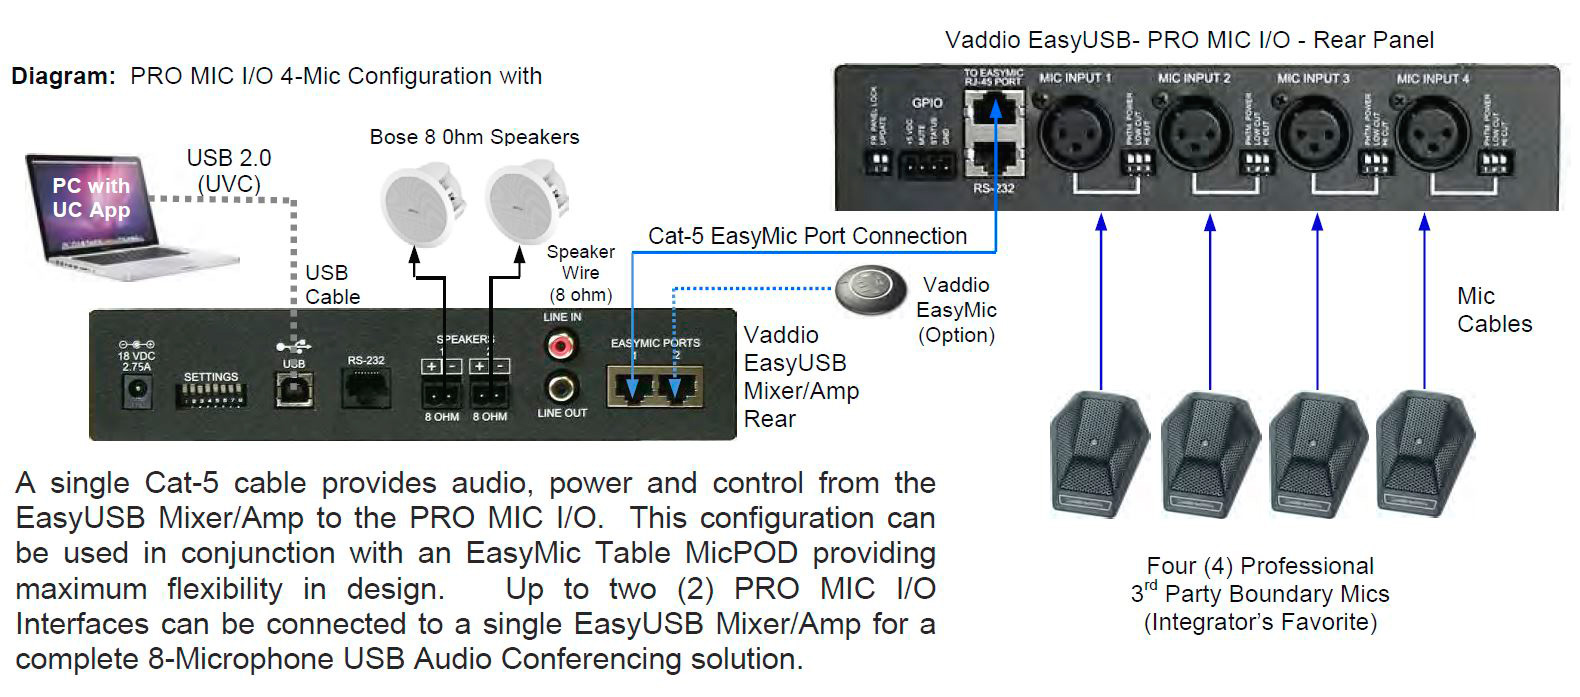 Mixer Amps Speakers Wiring Diagram Fender Champ Amp Vaddio 999 8520 000 Easy Usb Pro Mic I O On